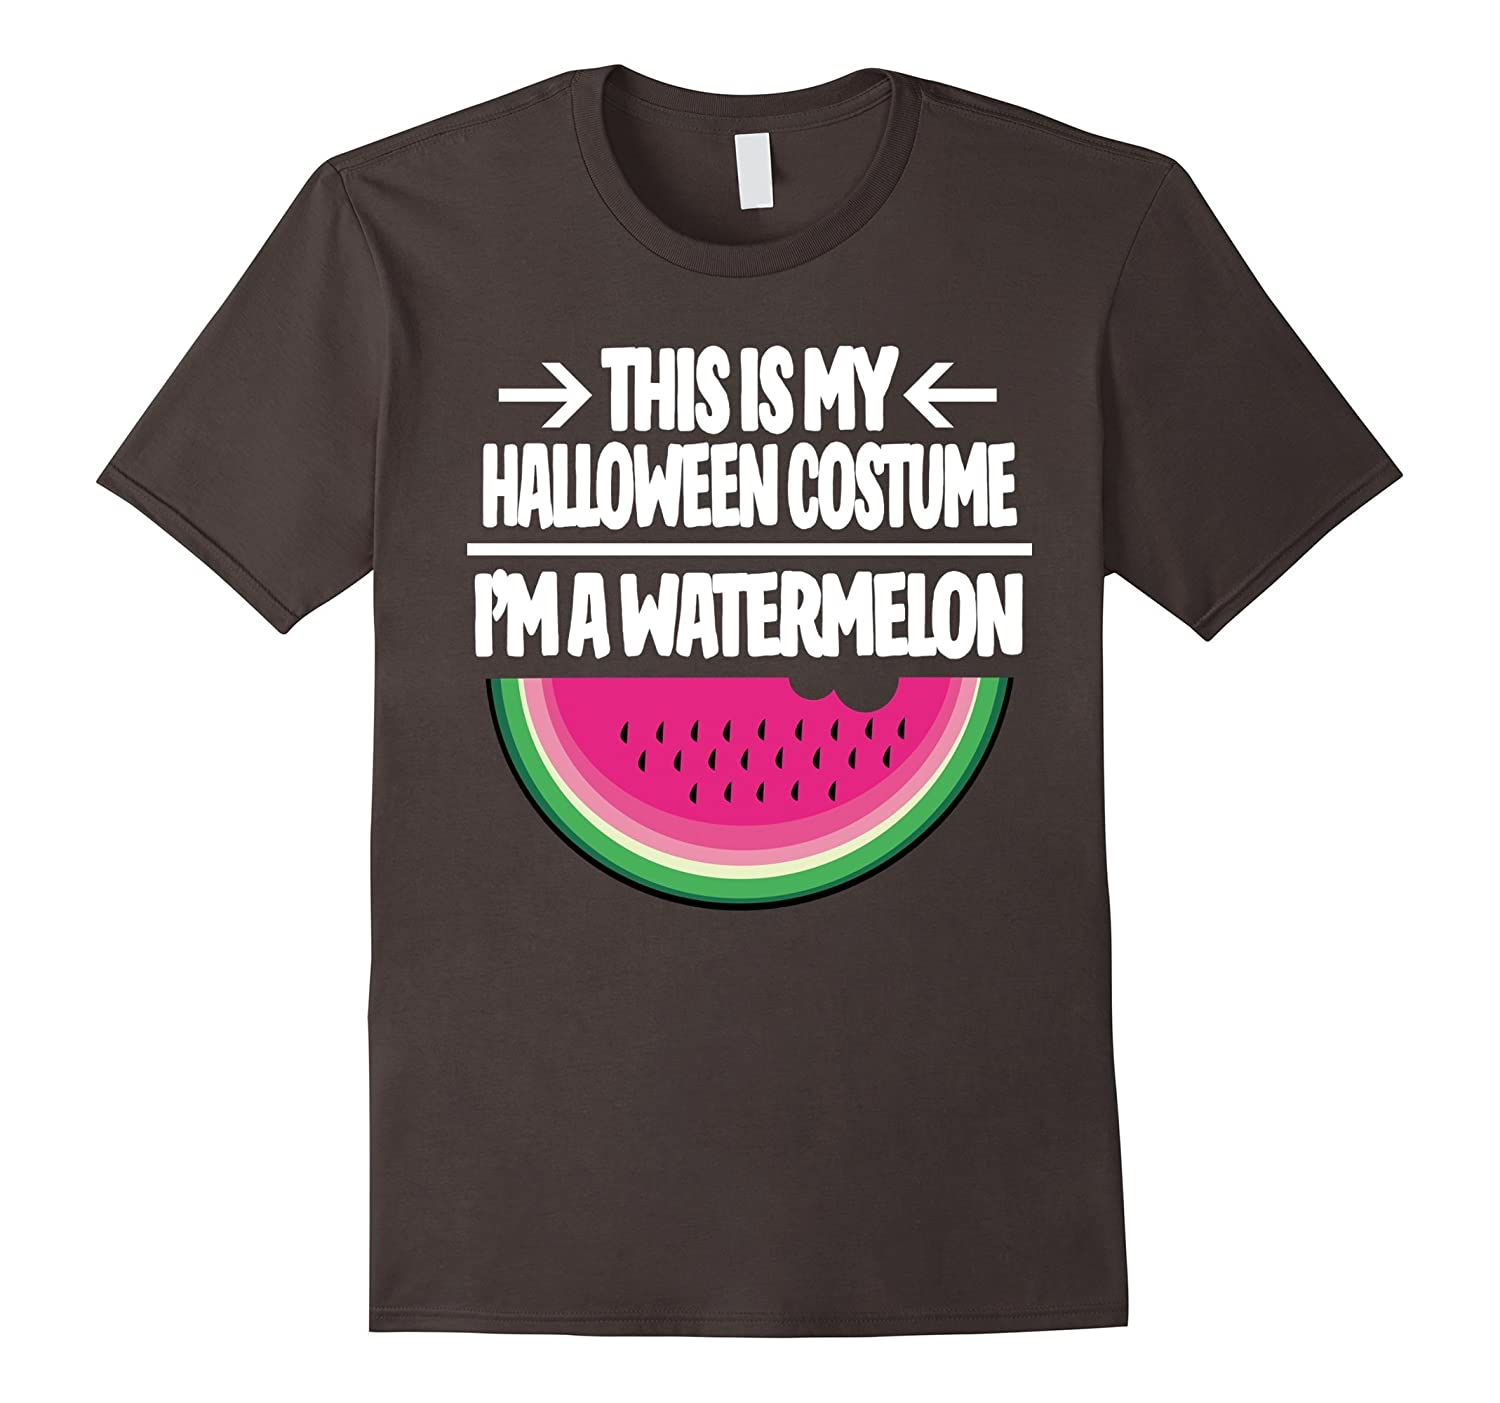 Watermelon Halloween Costume Shirt - Men Women Youth Sizes